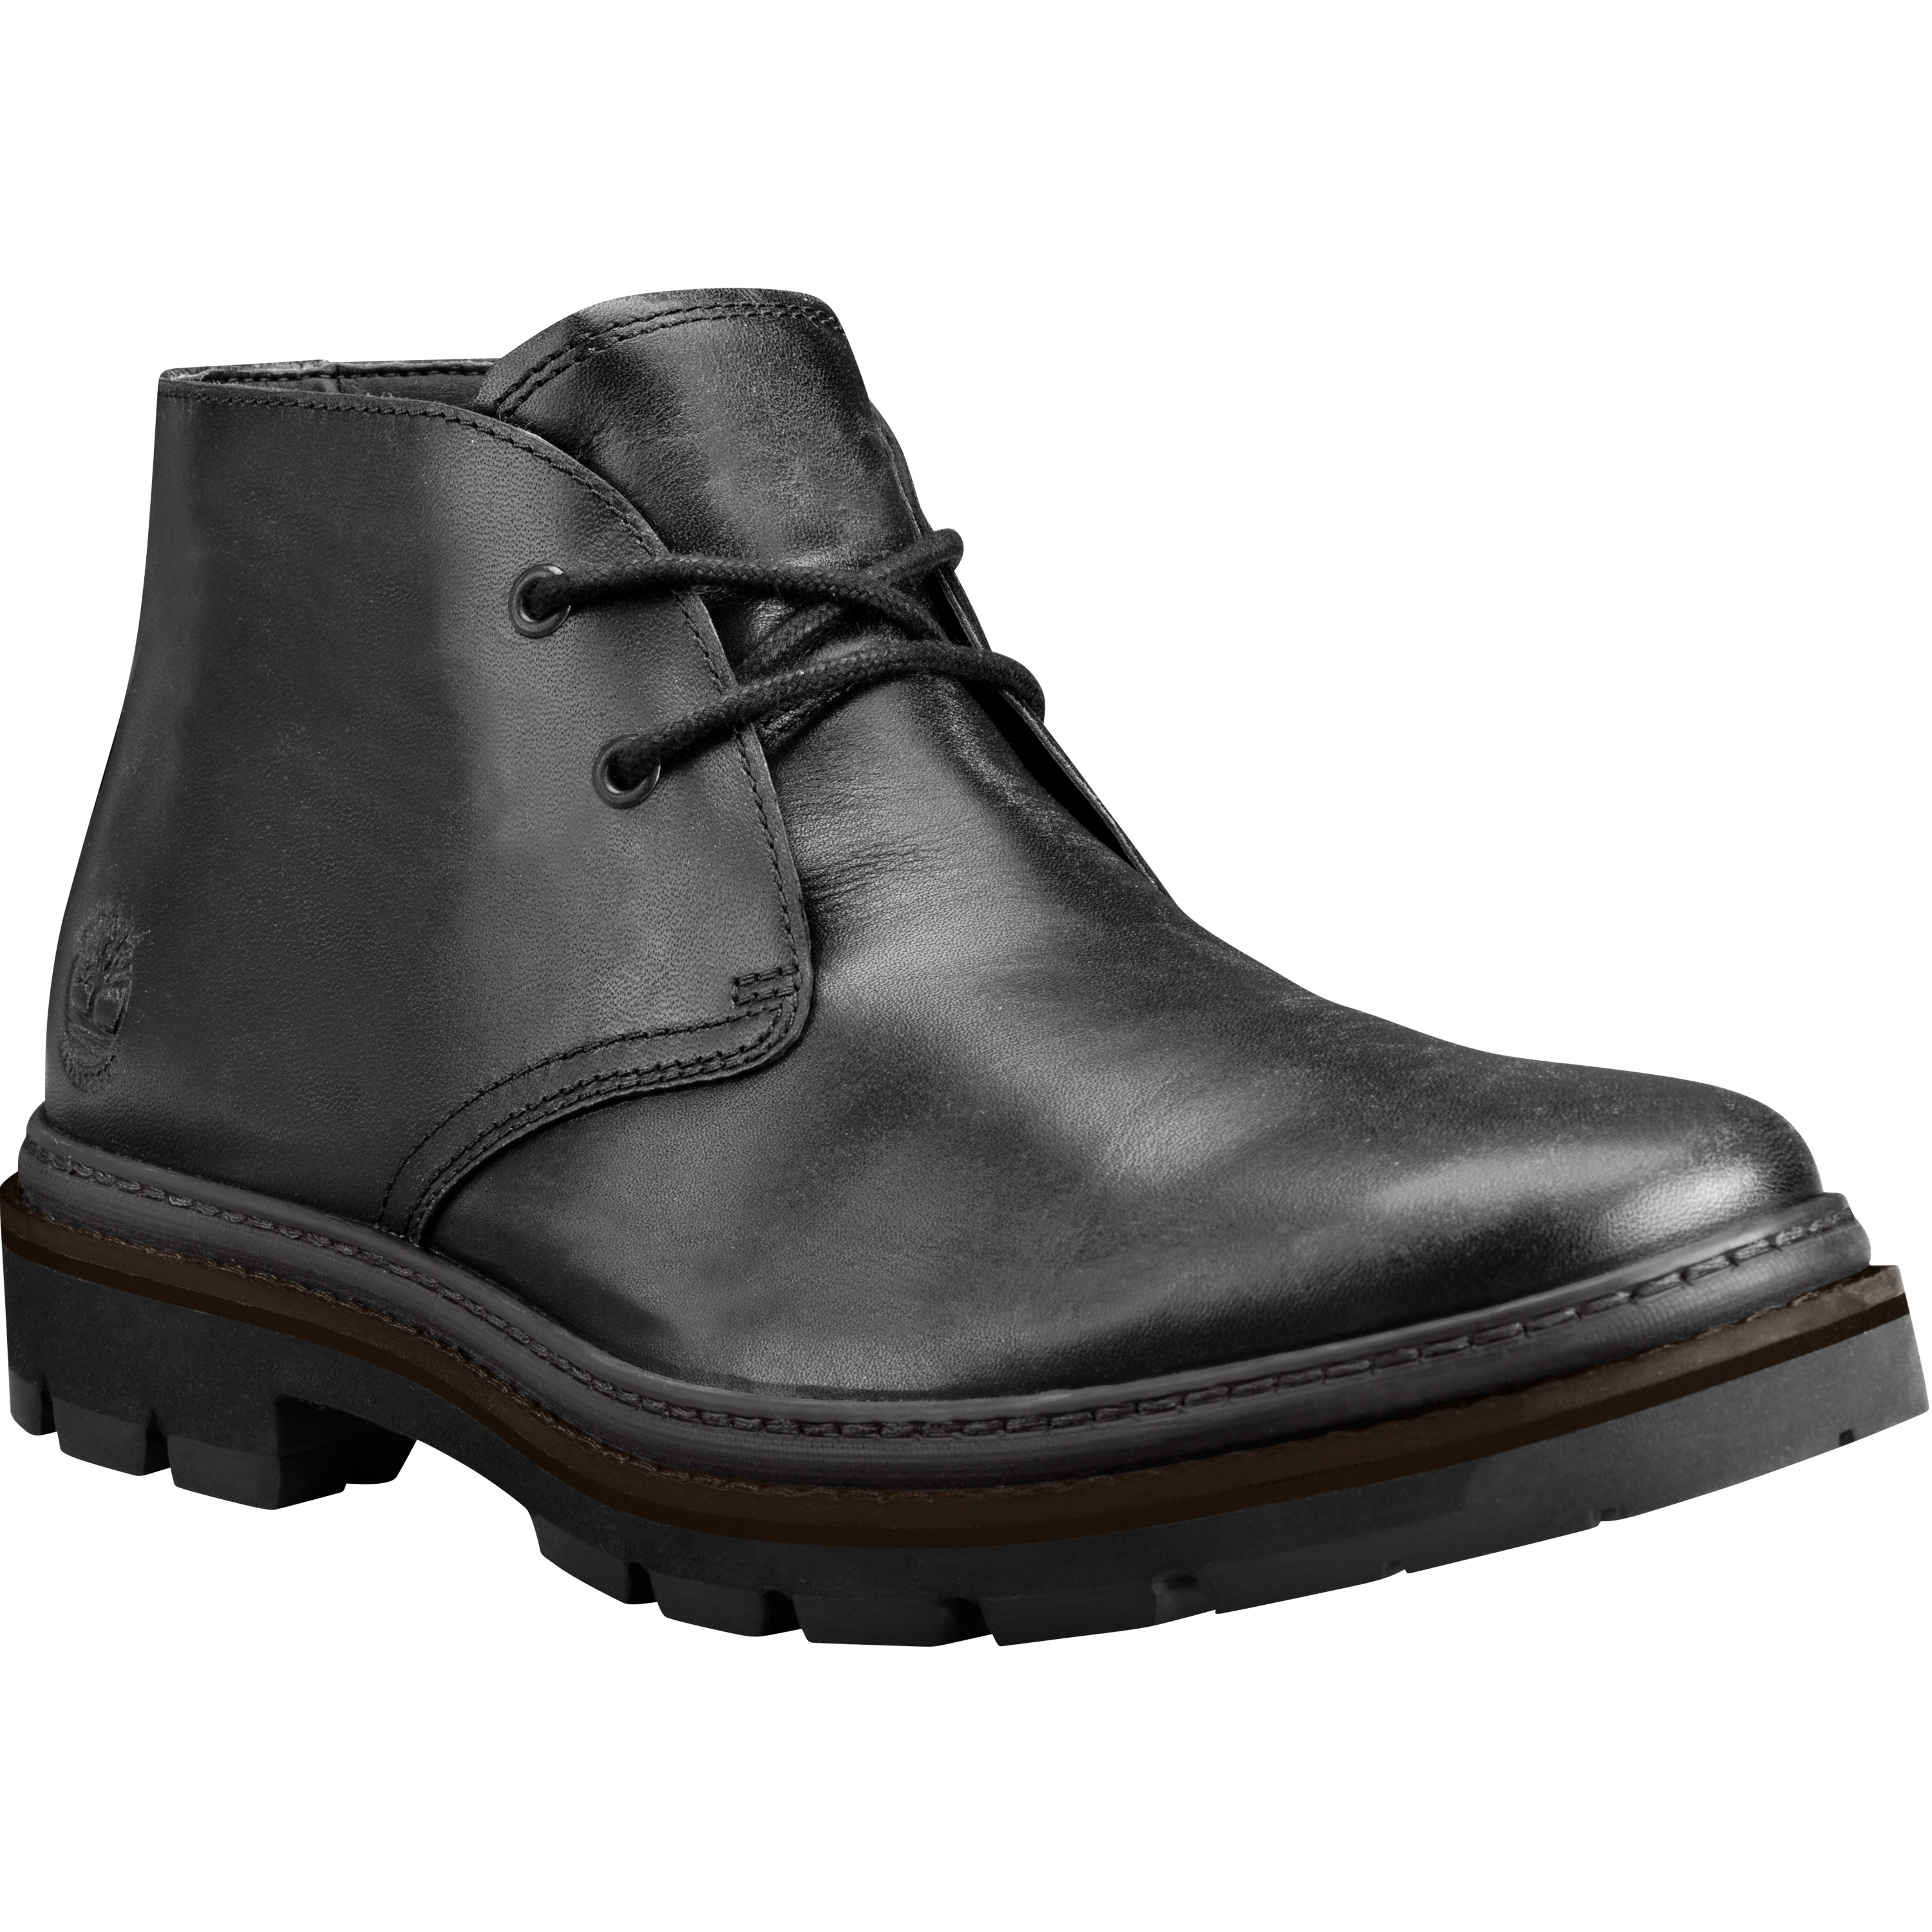 Timberland Port Union Chukka Boots in